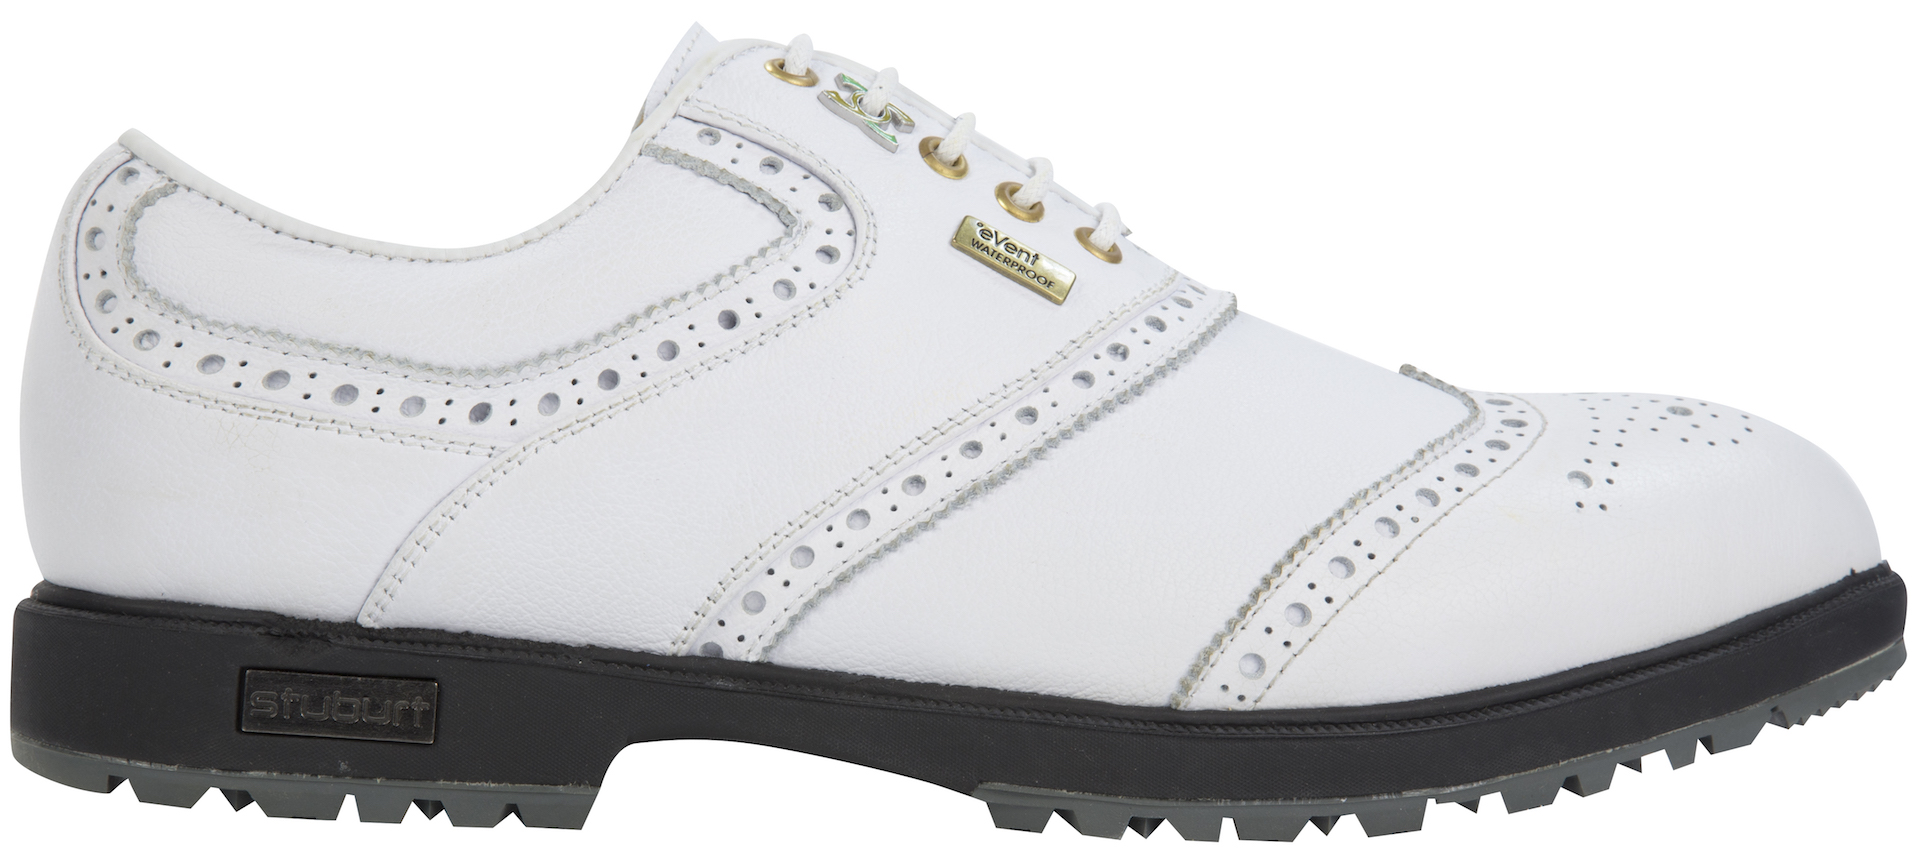 0f71a892b76 GolfPunk Selects – Top 14 Golf Shoes for 2019 - GolfPunkHQ